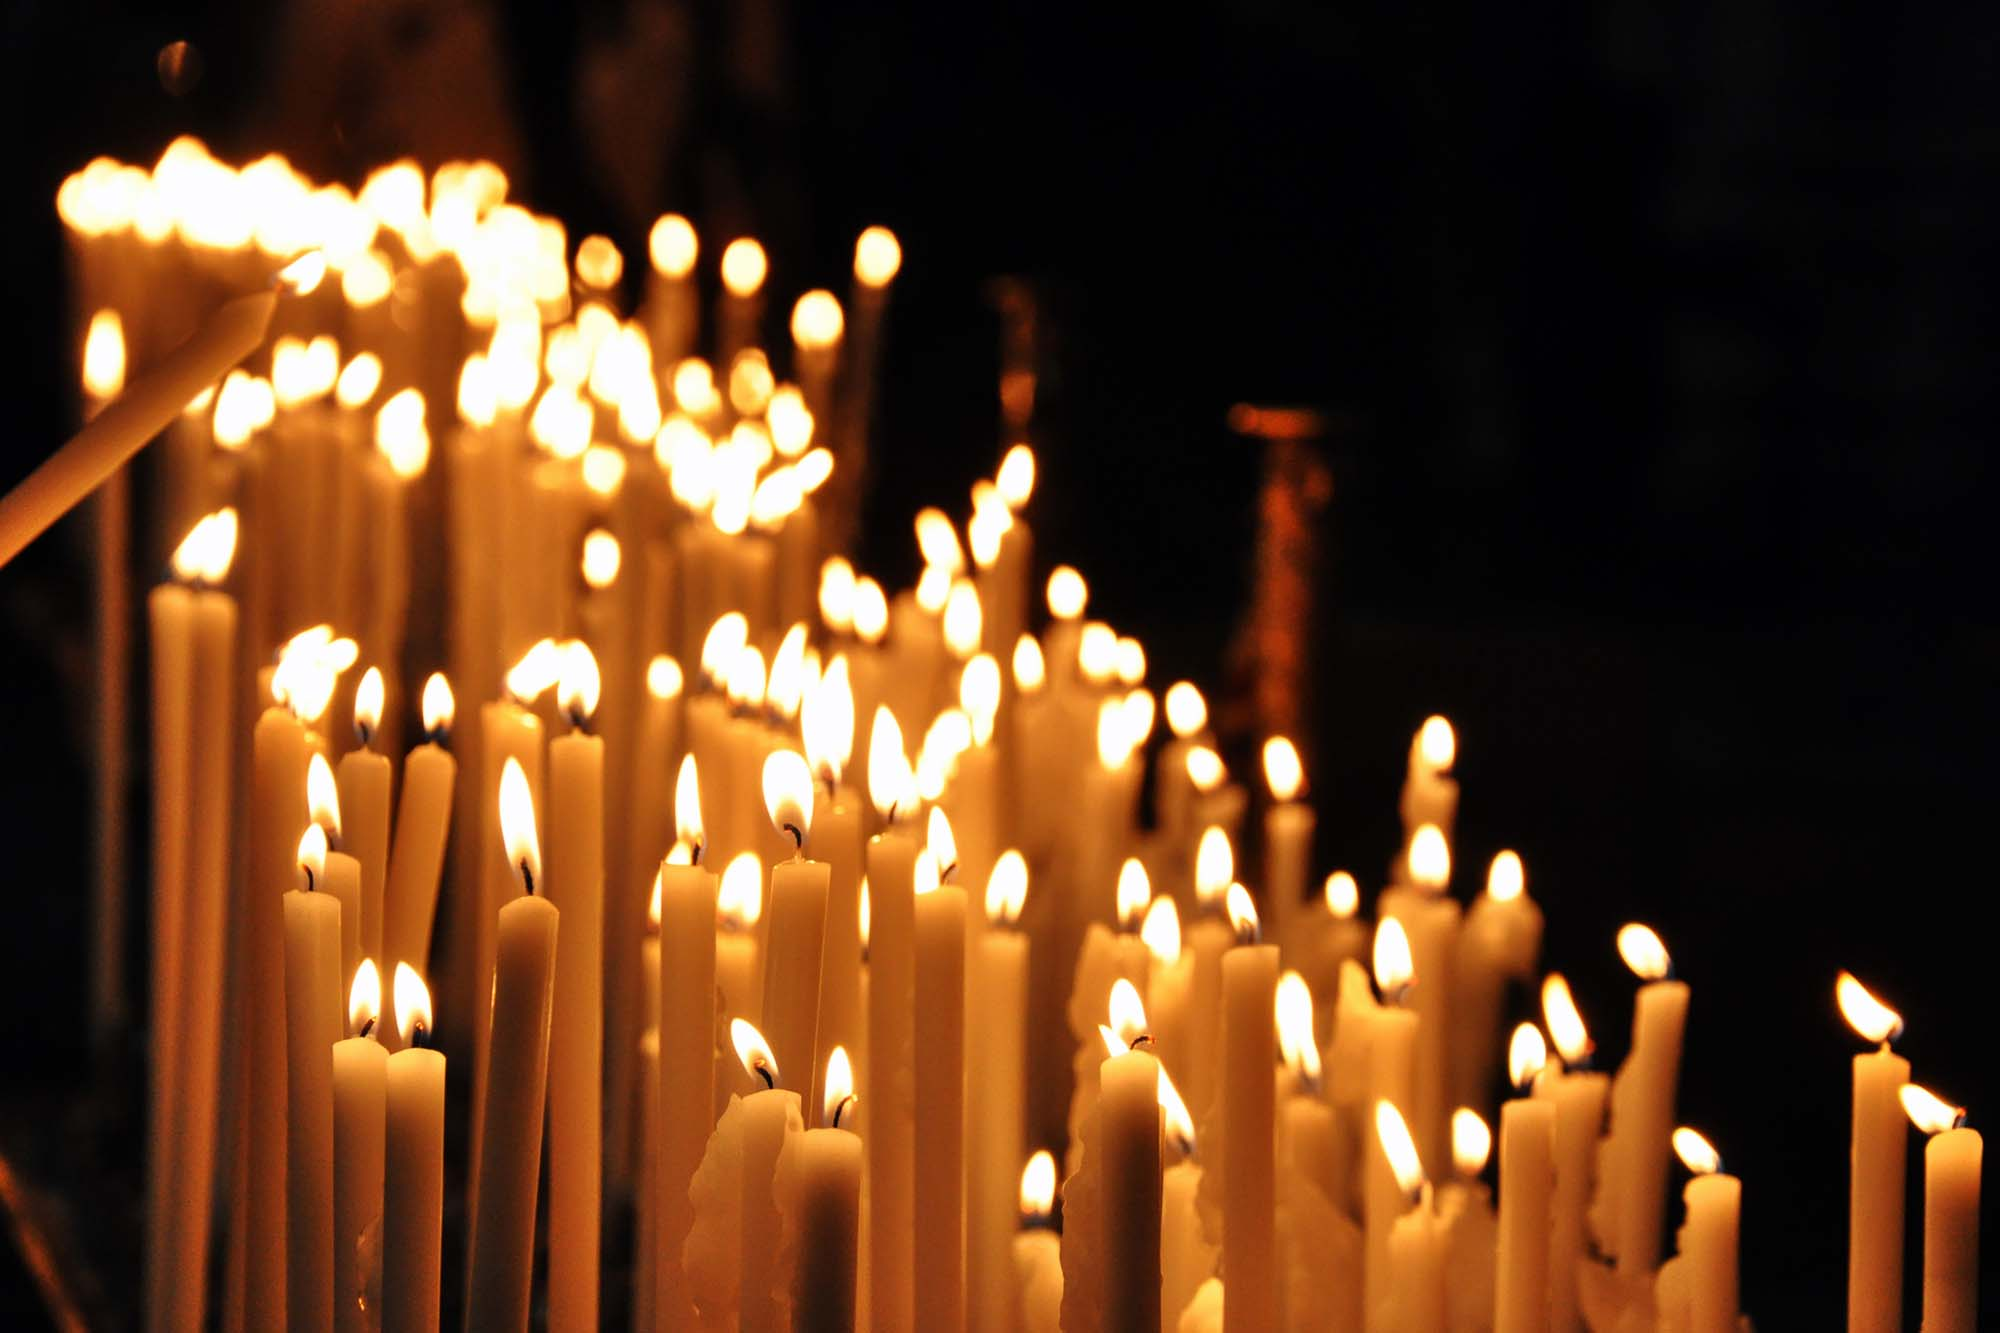 Church candles being lit for prayer